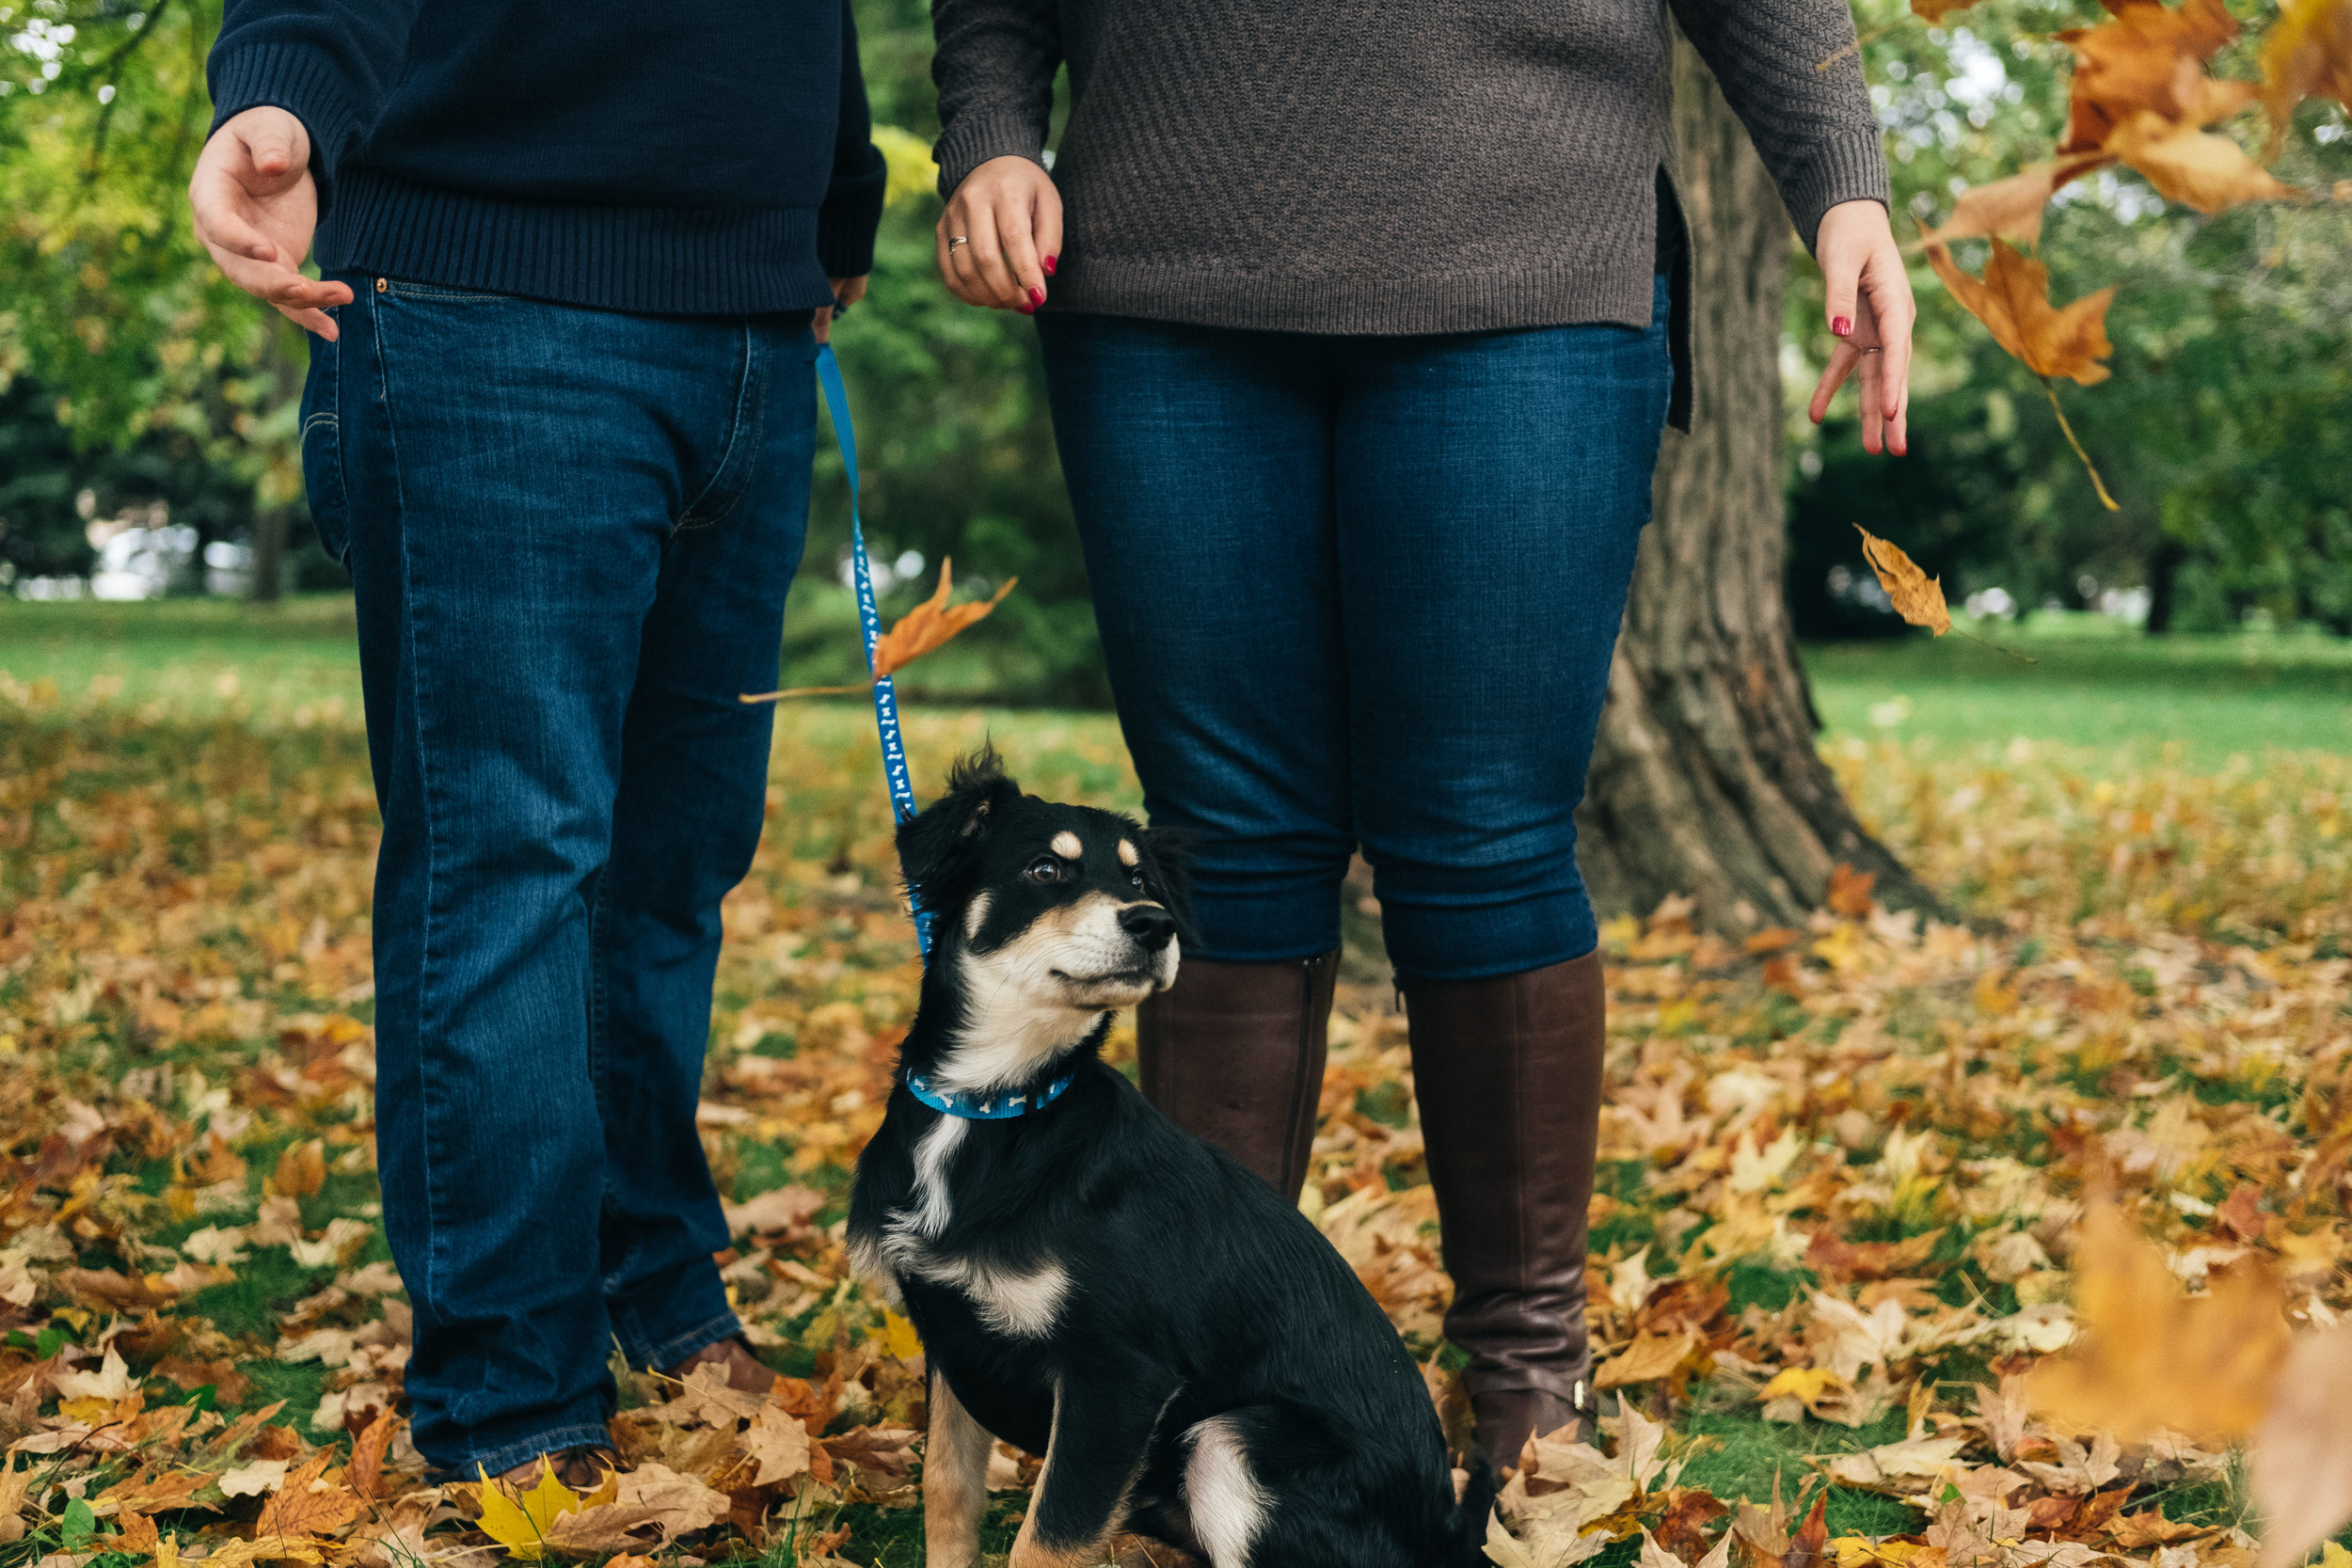 Downtown Toledo fall engagement session with the couple's dog.